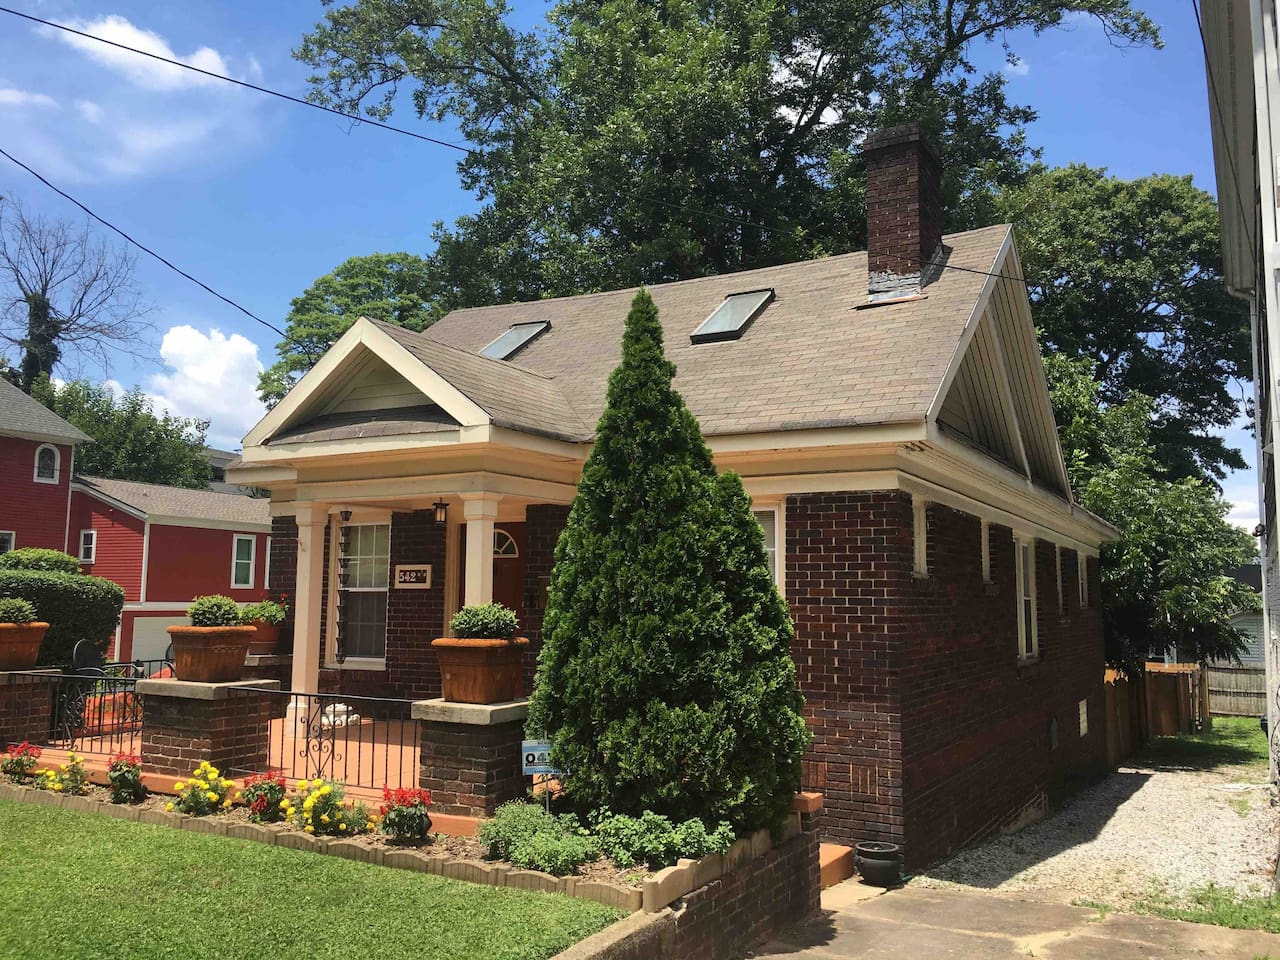 Charming urban cottage in Atlanta's hip 4th Ward neighborhood on Highland Ave. within a 30 minute walk to all of Downtown's attractions, concert and sporting event venues to the West and a 15 min. walk to the East of 30 different bars & restaurants.